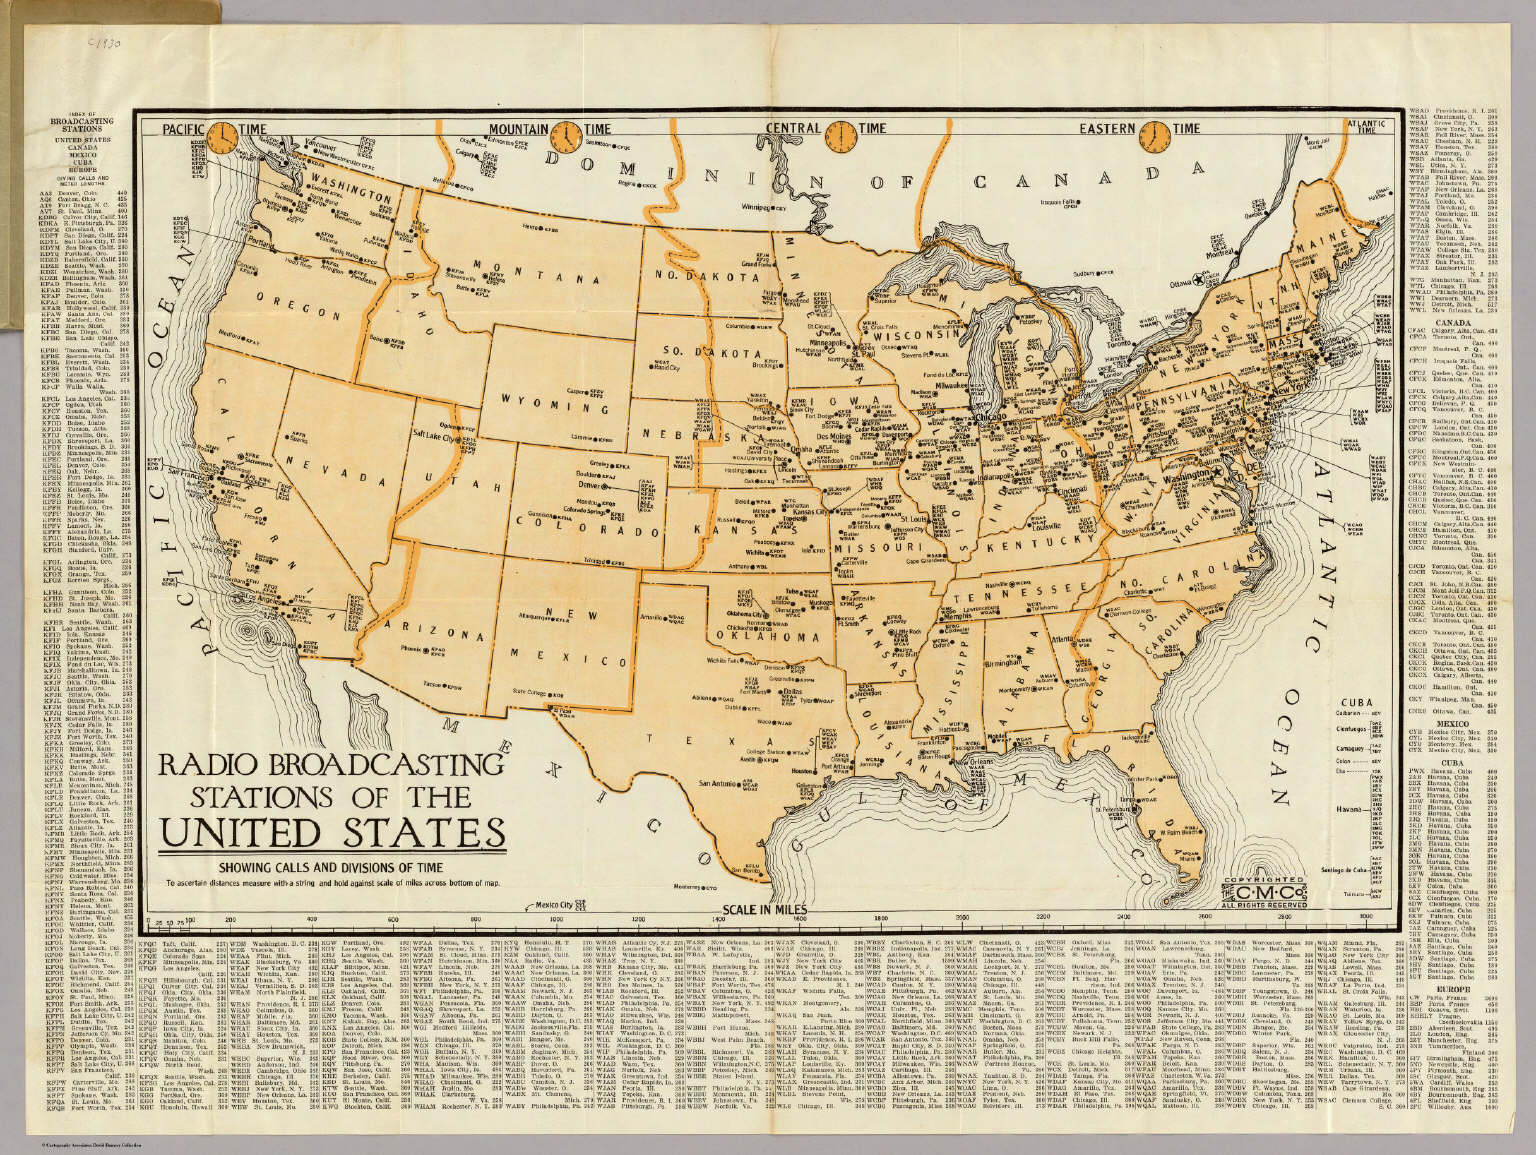 radio broadcasting stations of the united states